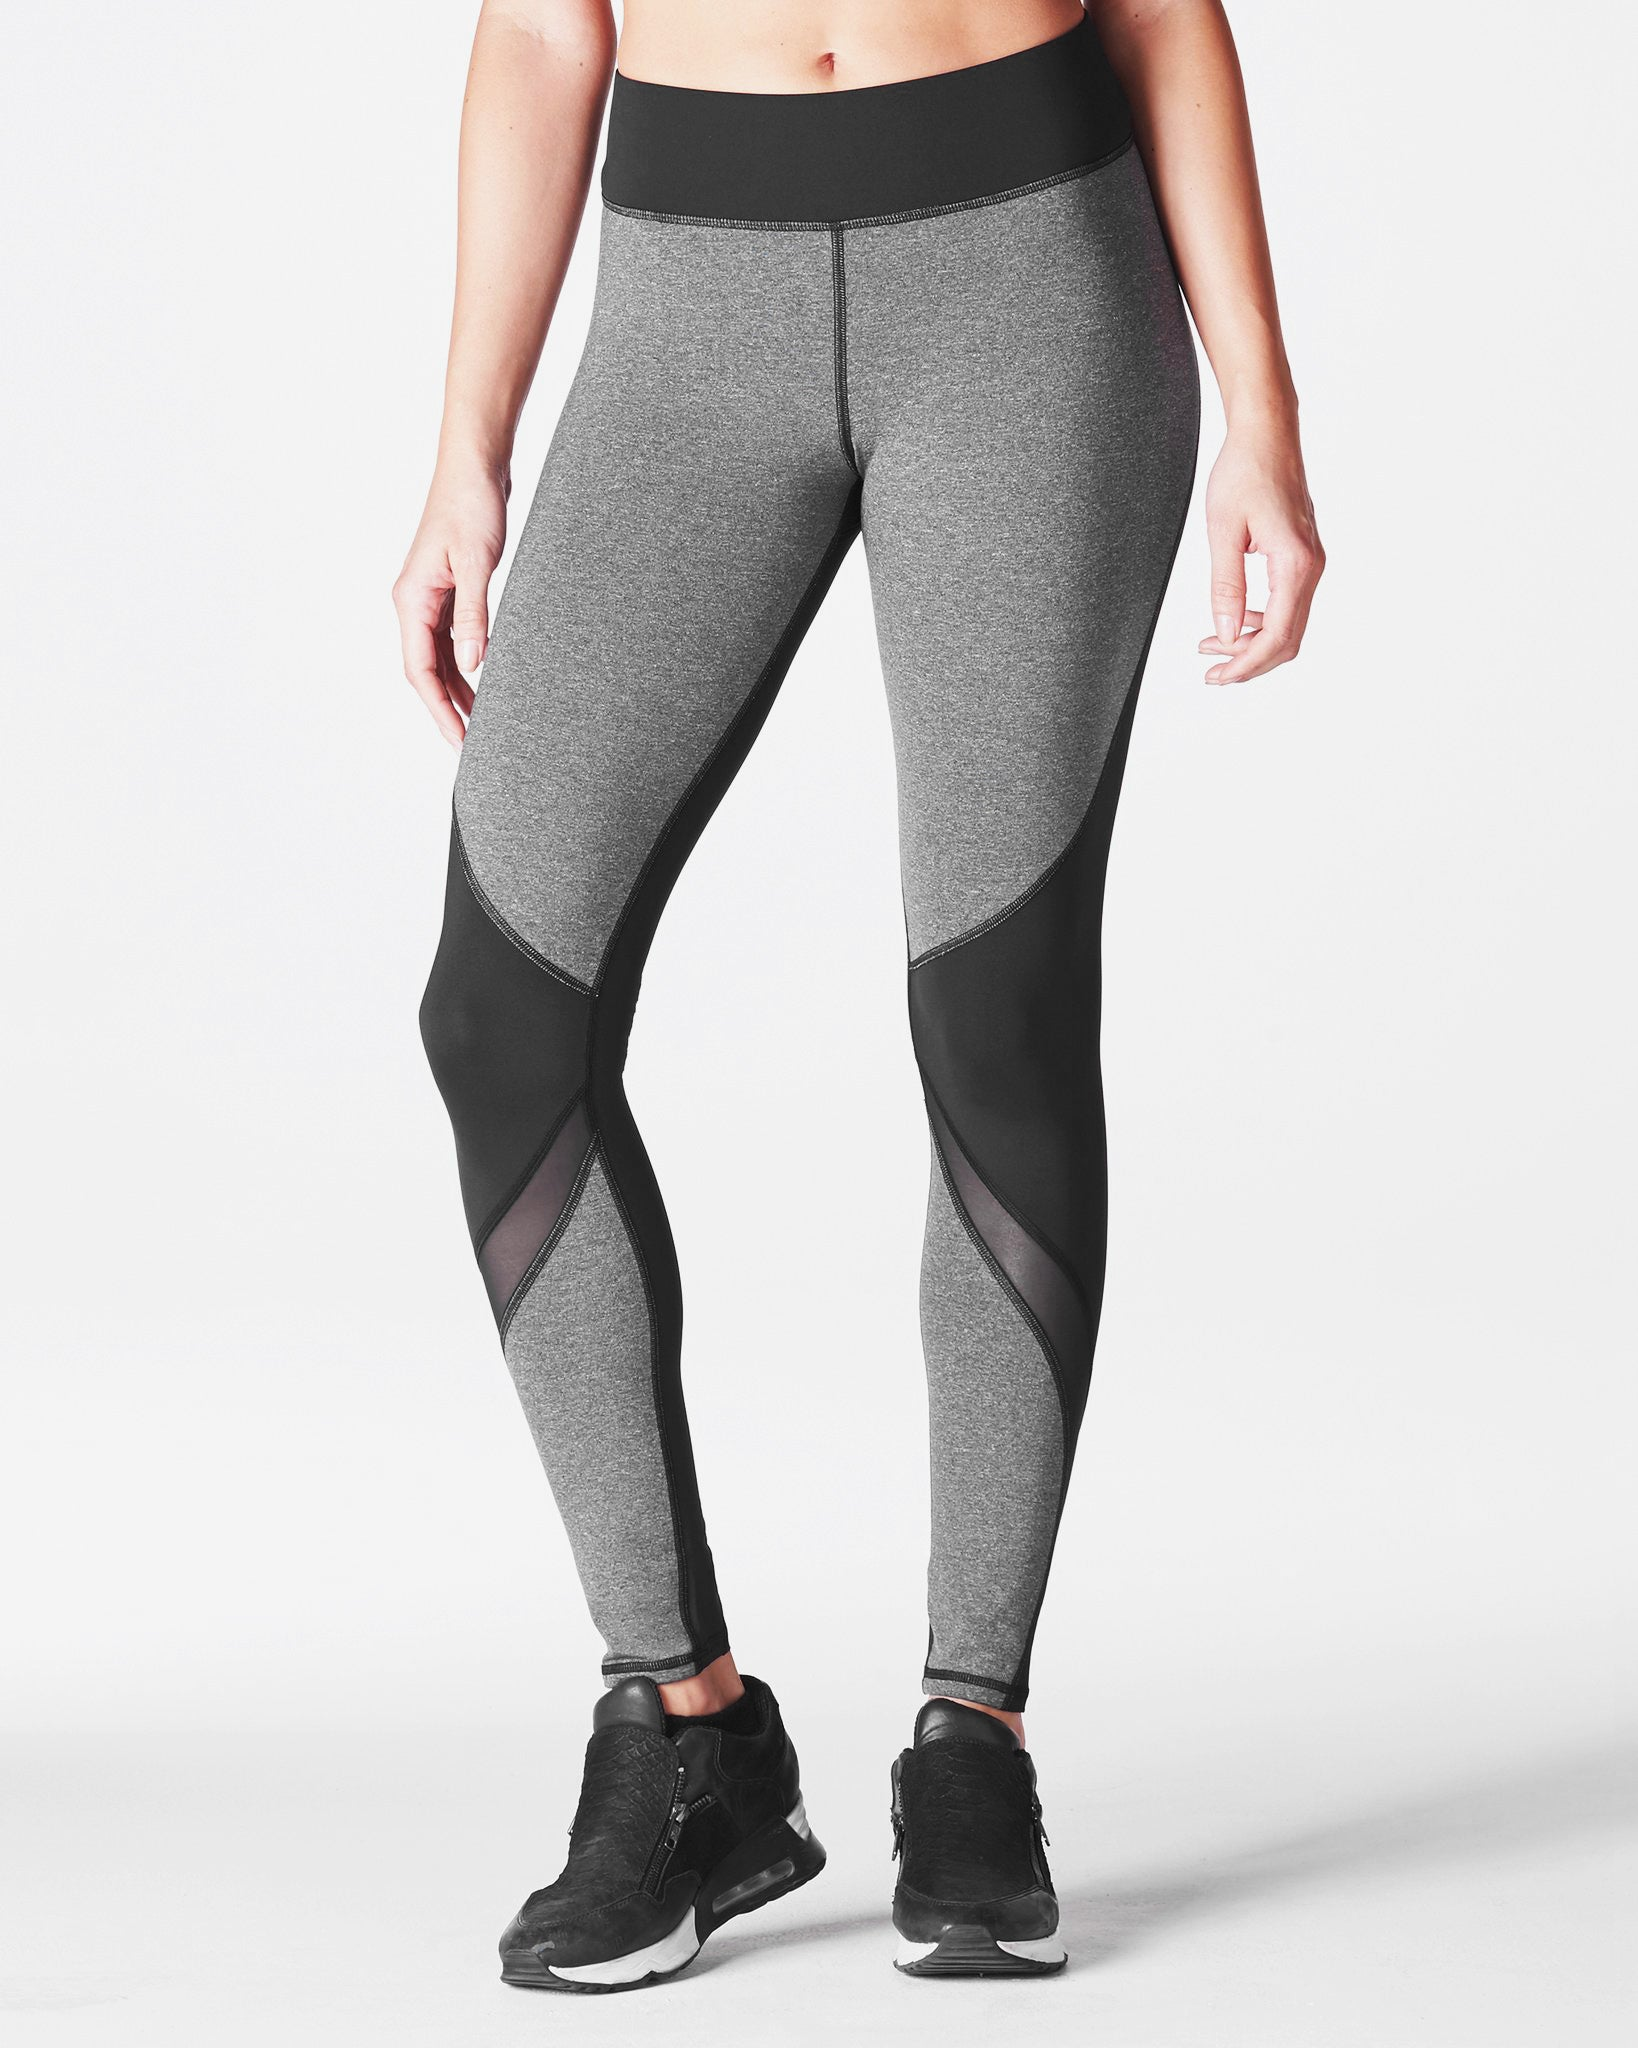 rifical-legging-heather-grey